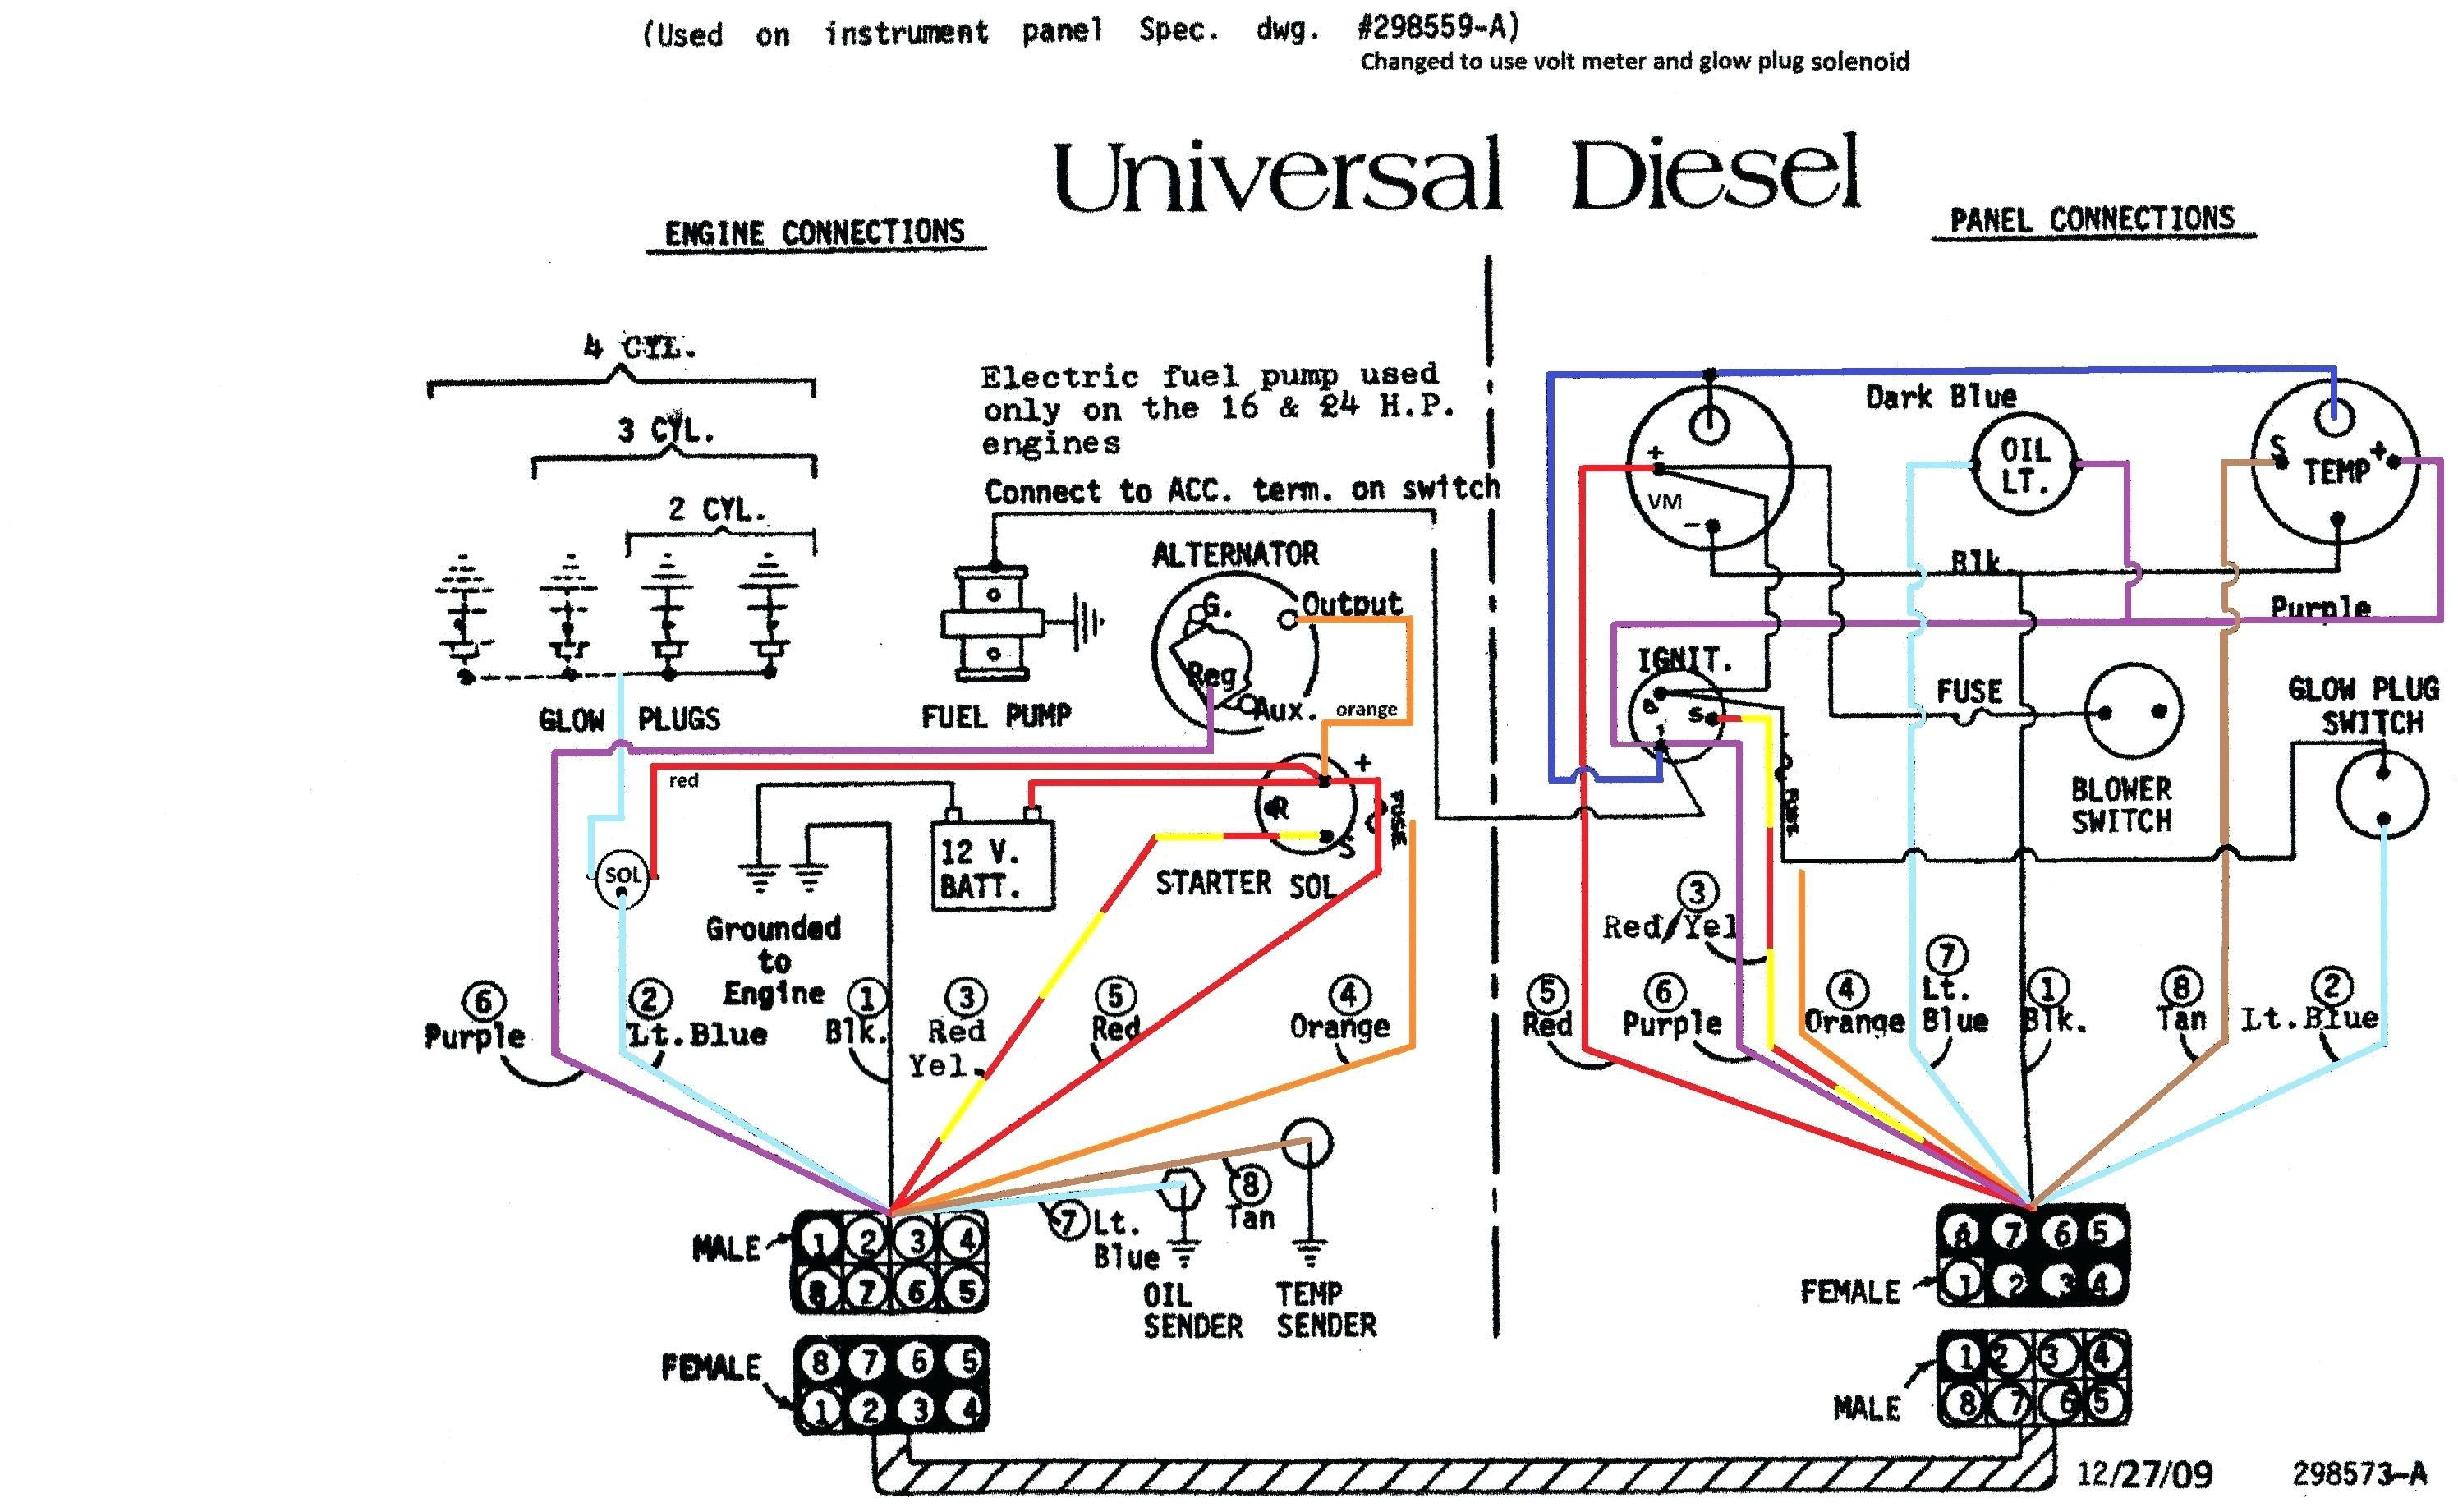 engine test stand wiring diagram awesome fuel pump wiring harness rh detoxicrecenze com airtex fuel pump wiring harness diagram Ford Fuel Pump Wiring Diagram